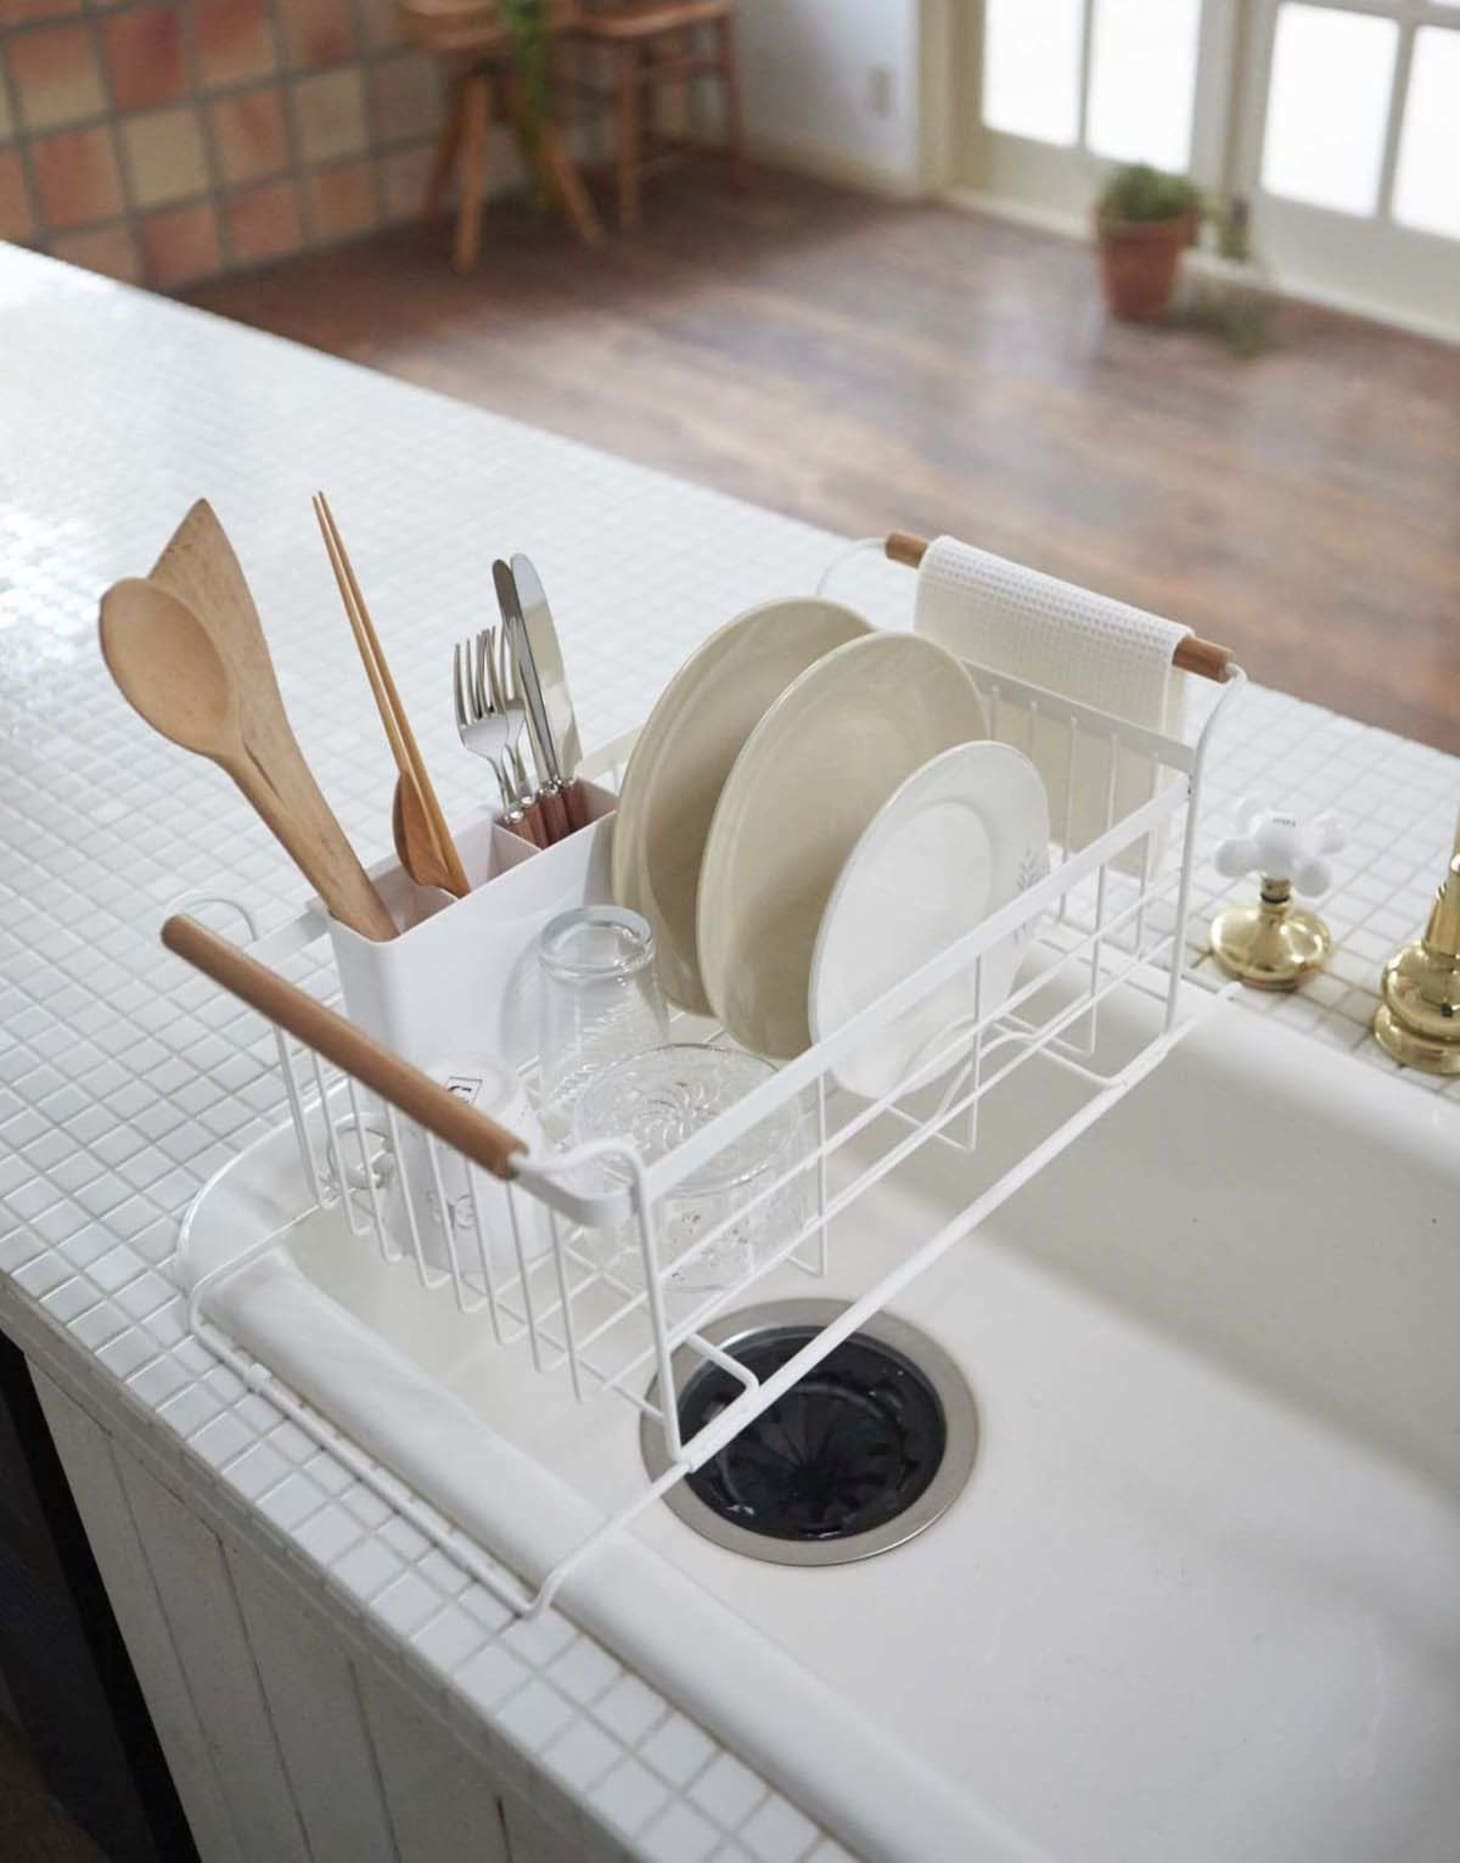 Top 10 Well Designed Dish Racks For Small Kitchens Apartment Therapy